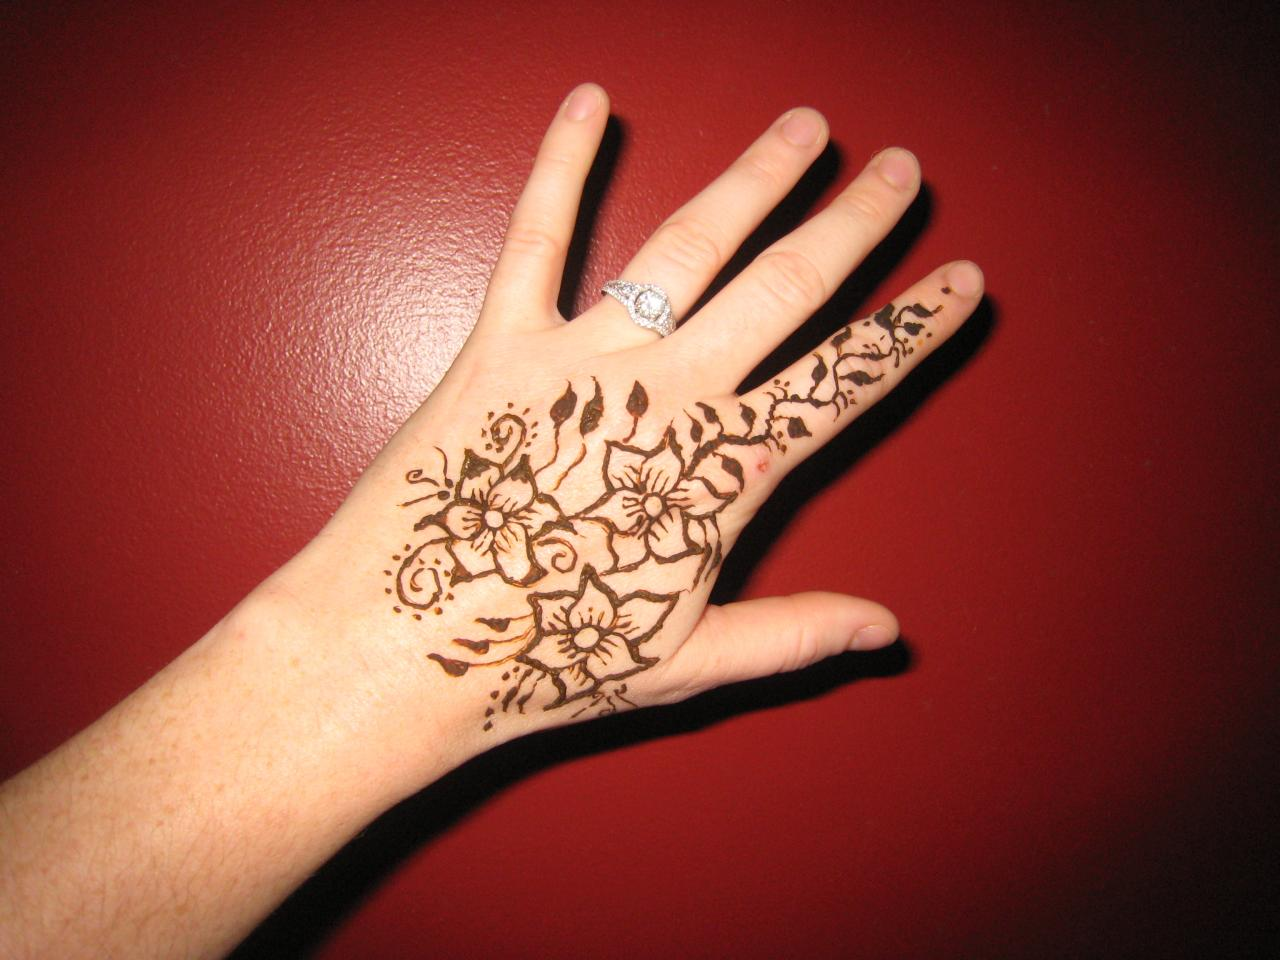 Simple Story Of A QuotStrangequot Girl Hand Art